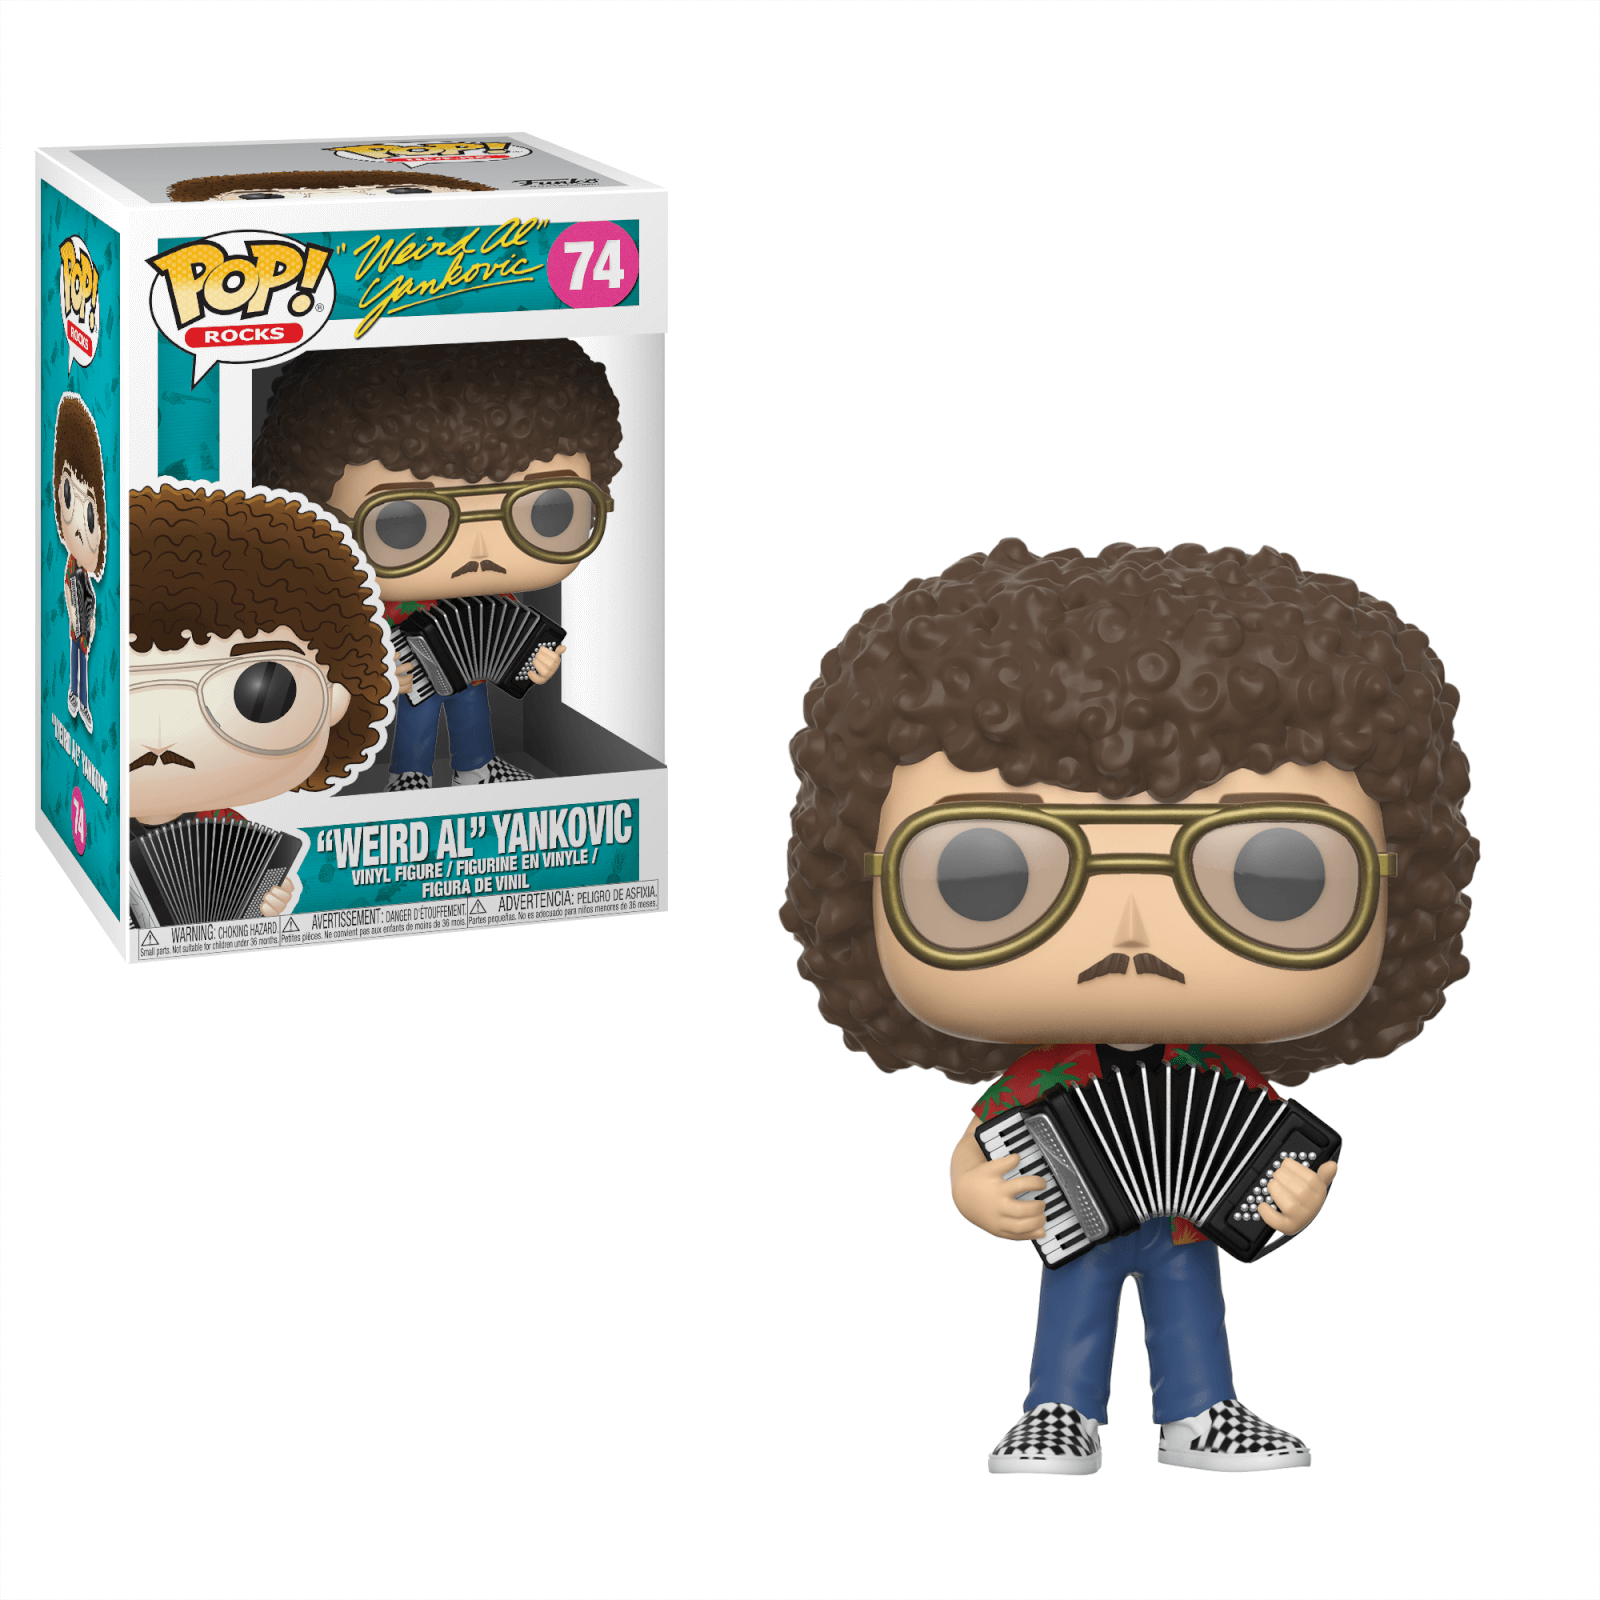 "Pop! Rocks """"Weird Al"""" Yankovic Pop! Vinyl Figure"